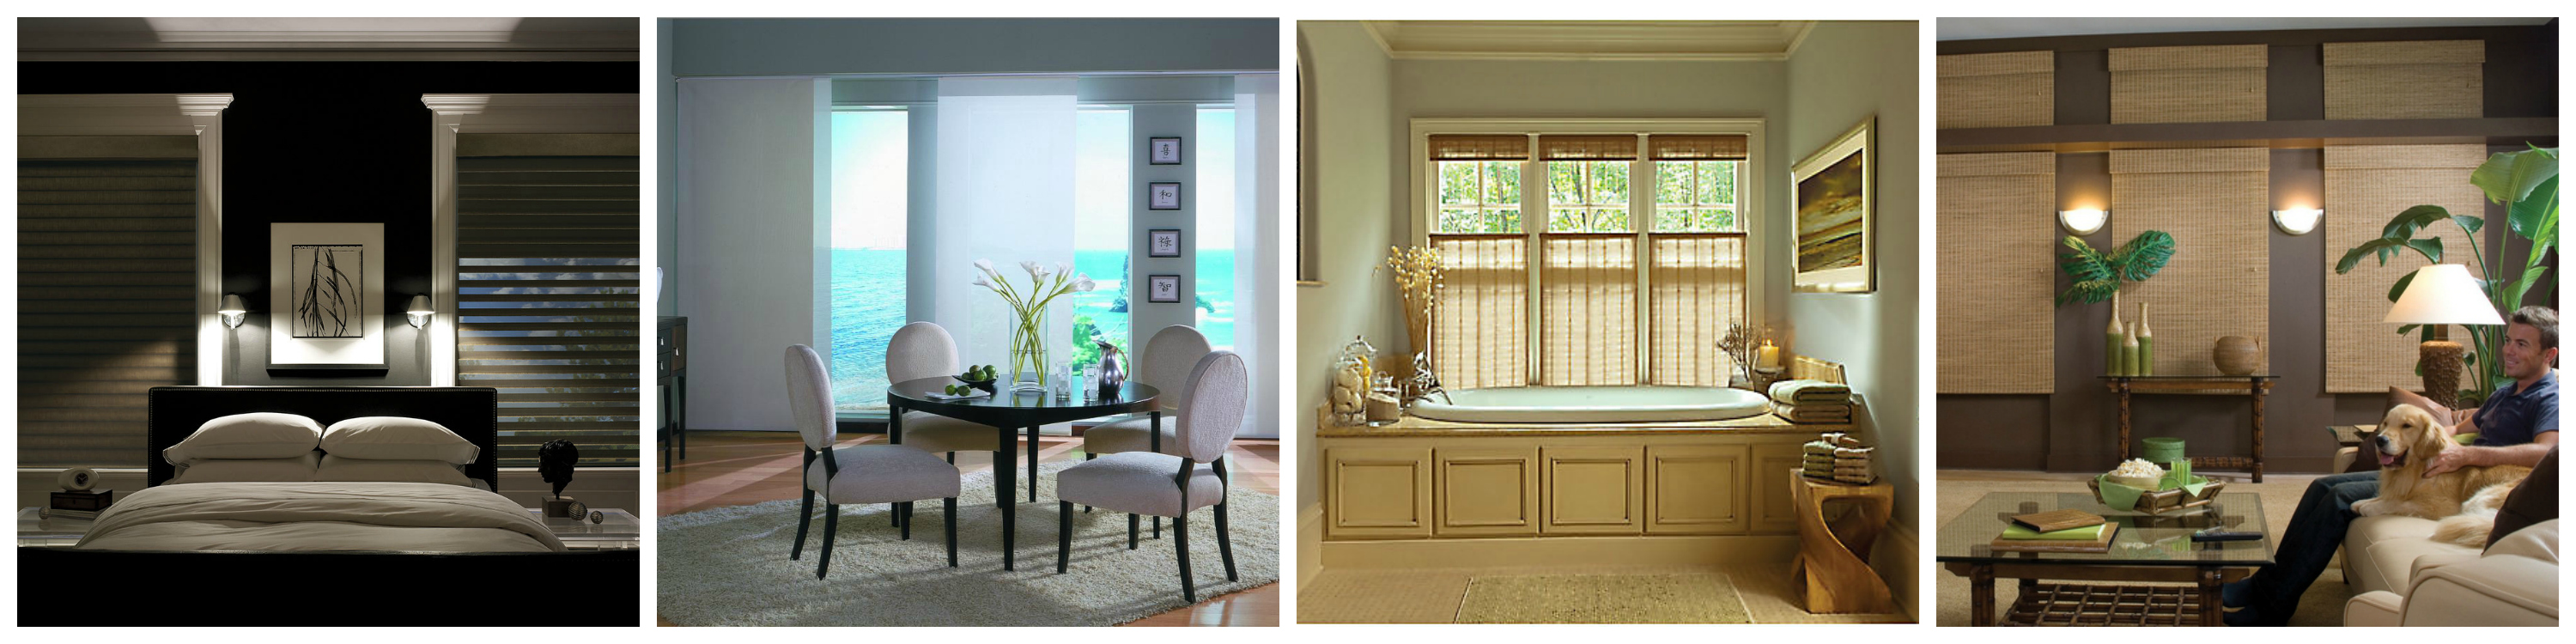 kansas in shades provenance affordable and city ww mo blinds shutters